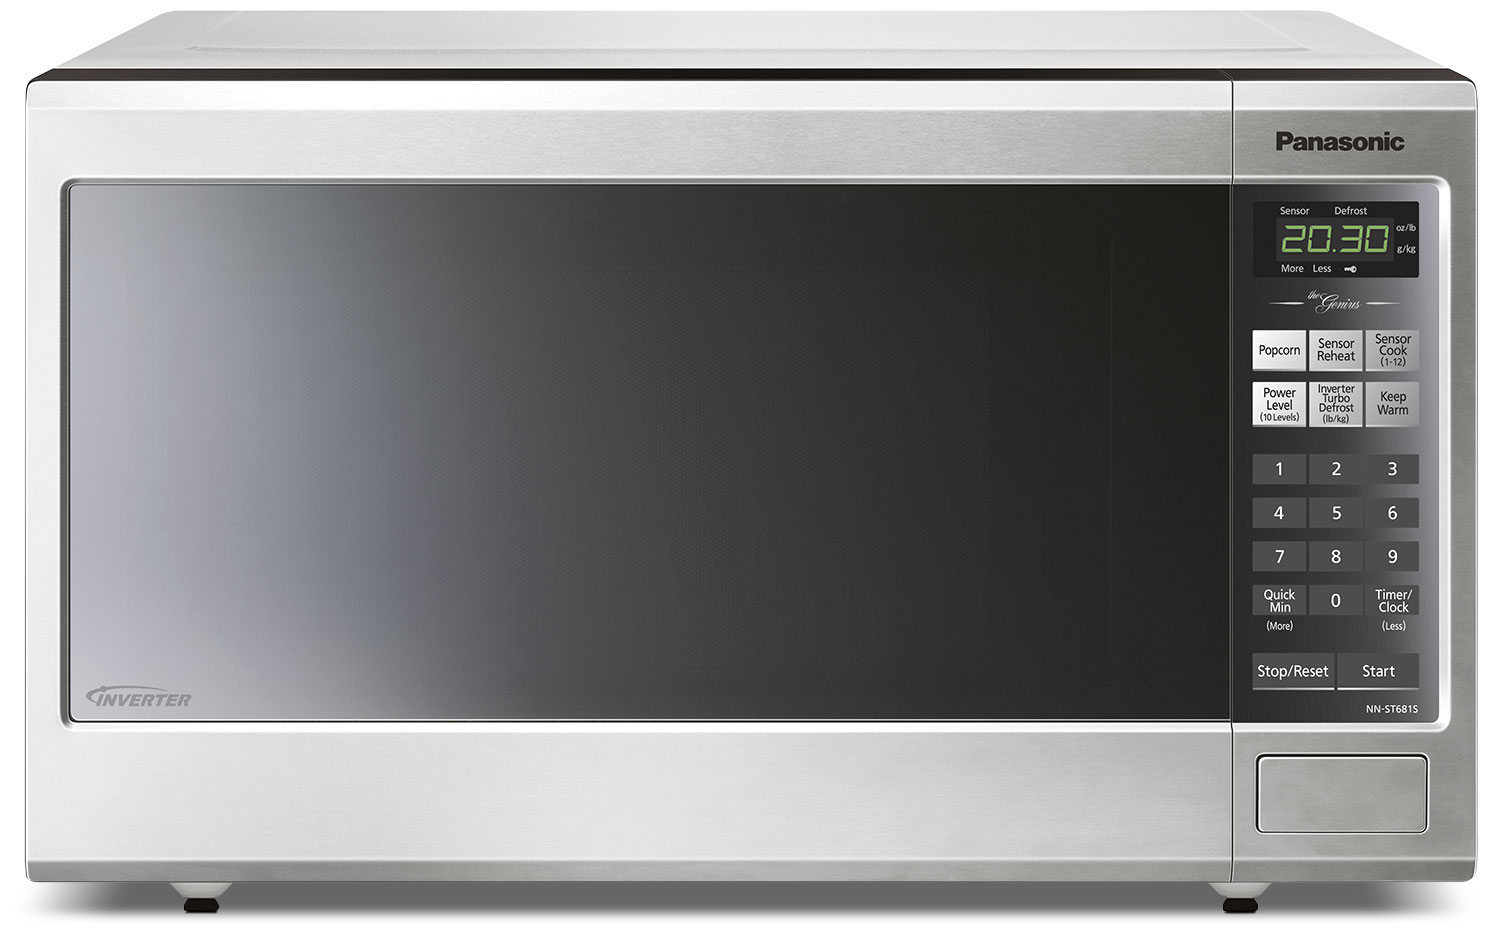 Panasonic Genius® 1.2 Cu. Ft. Countertop Microwave – NNST681SC